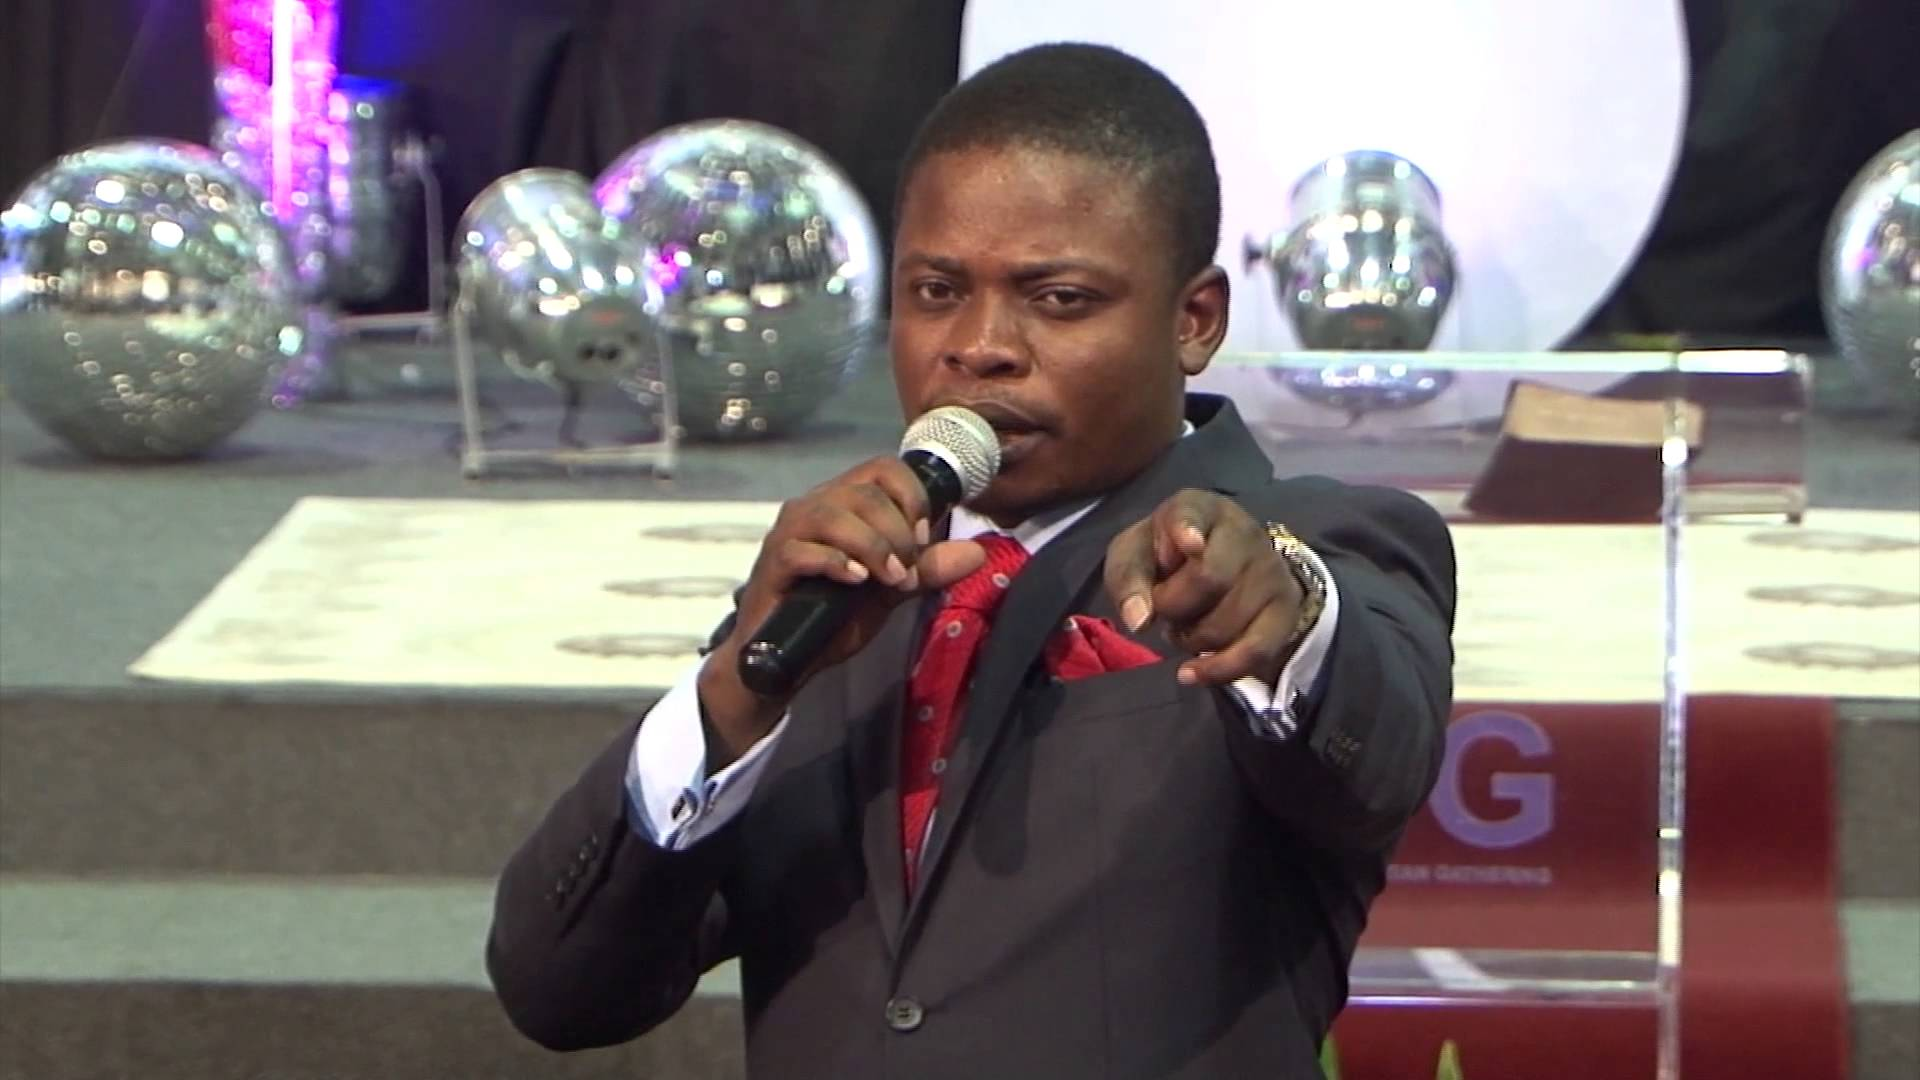 maxresdefault1 African Prophet Claims To Walk On Air In Ridiculous Miracle Video